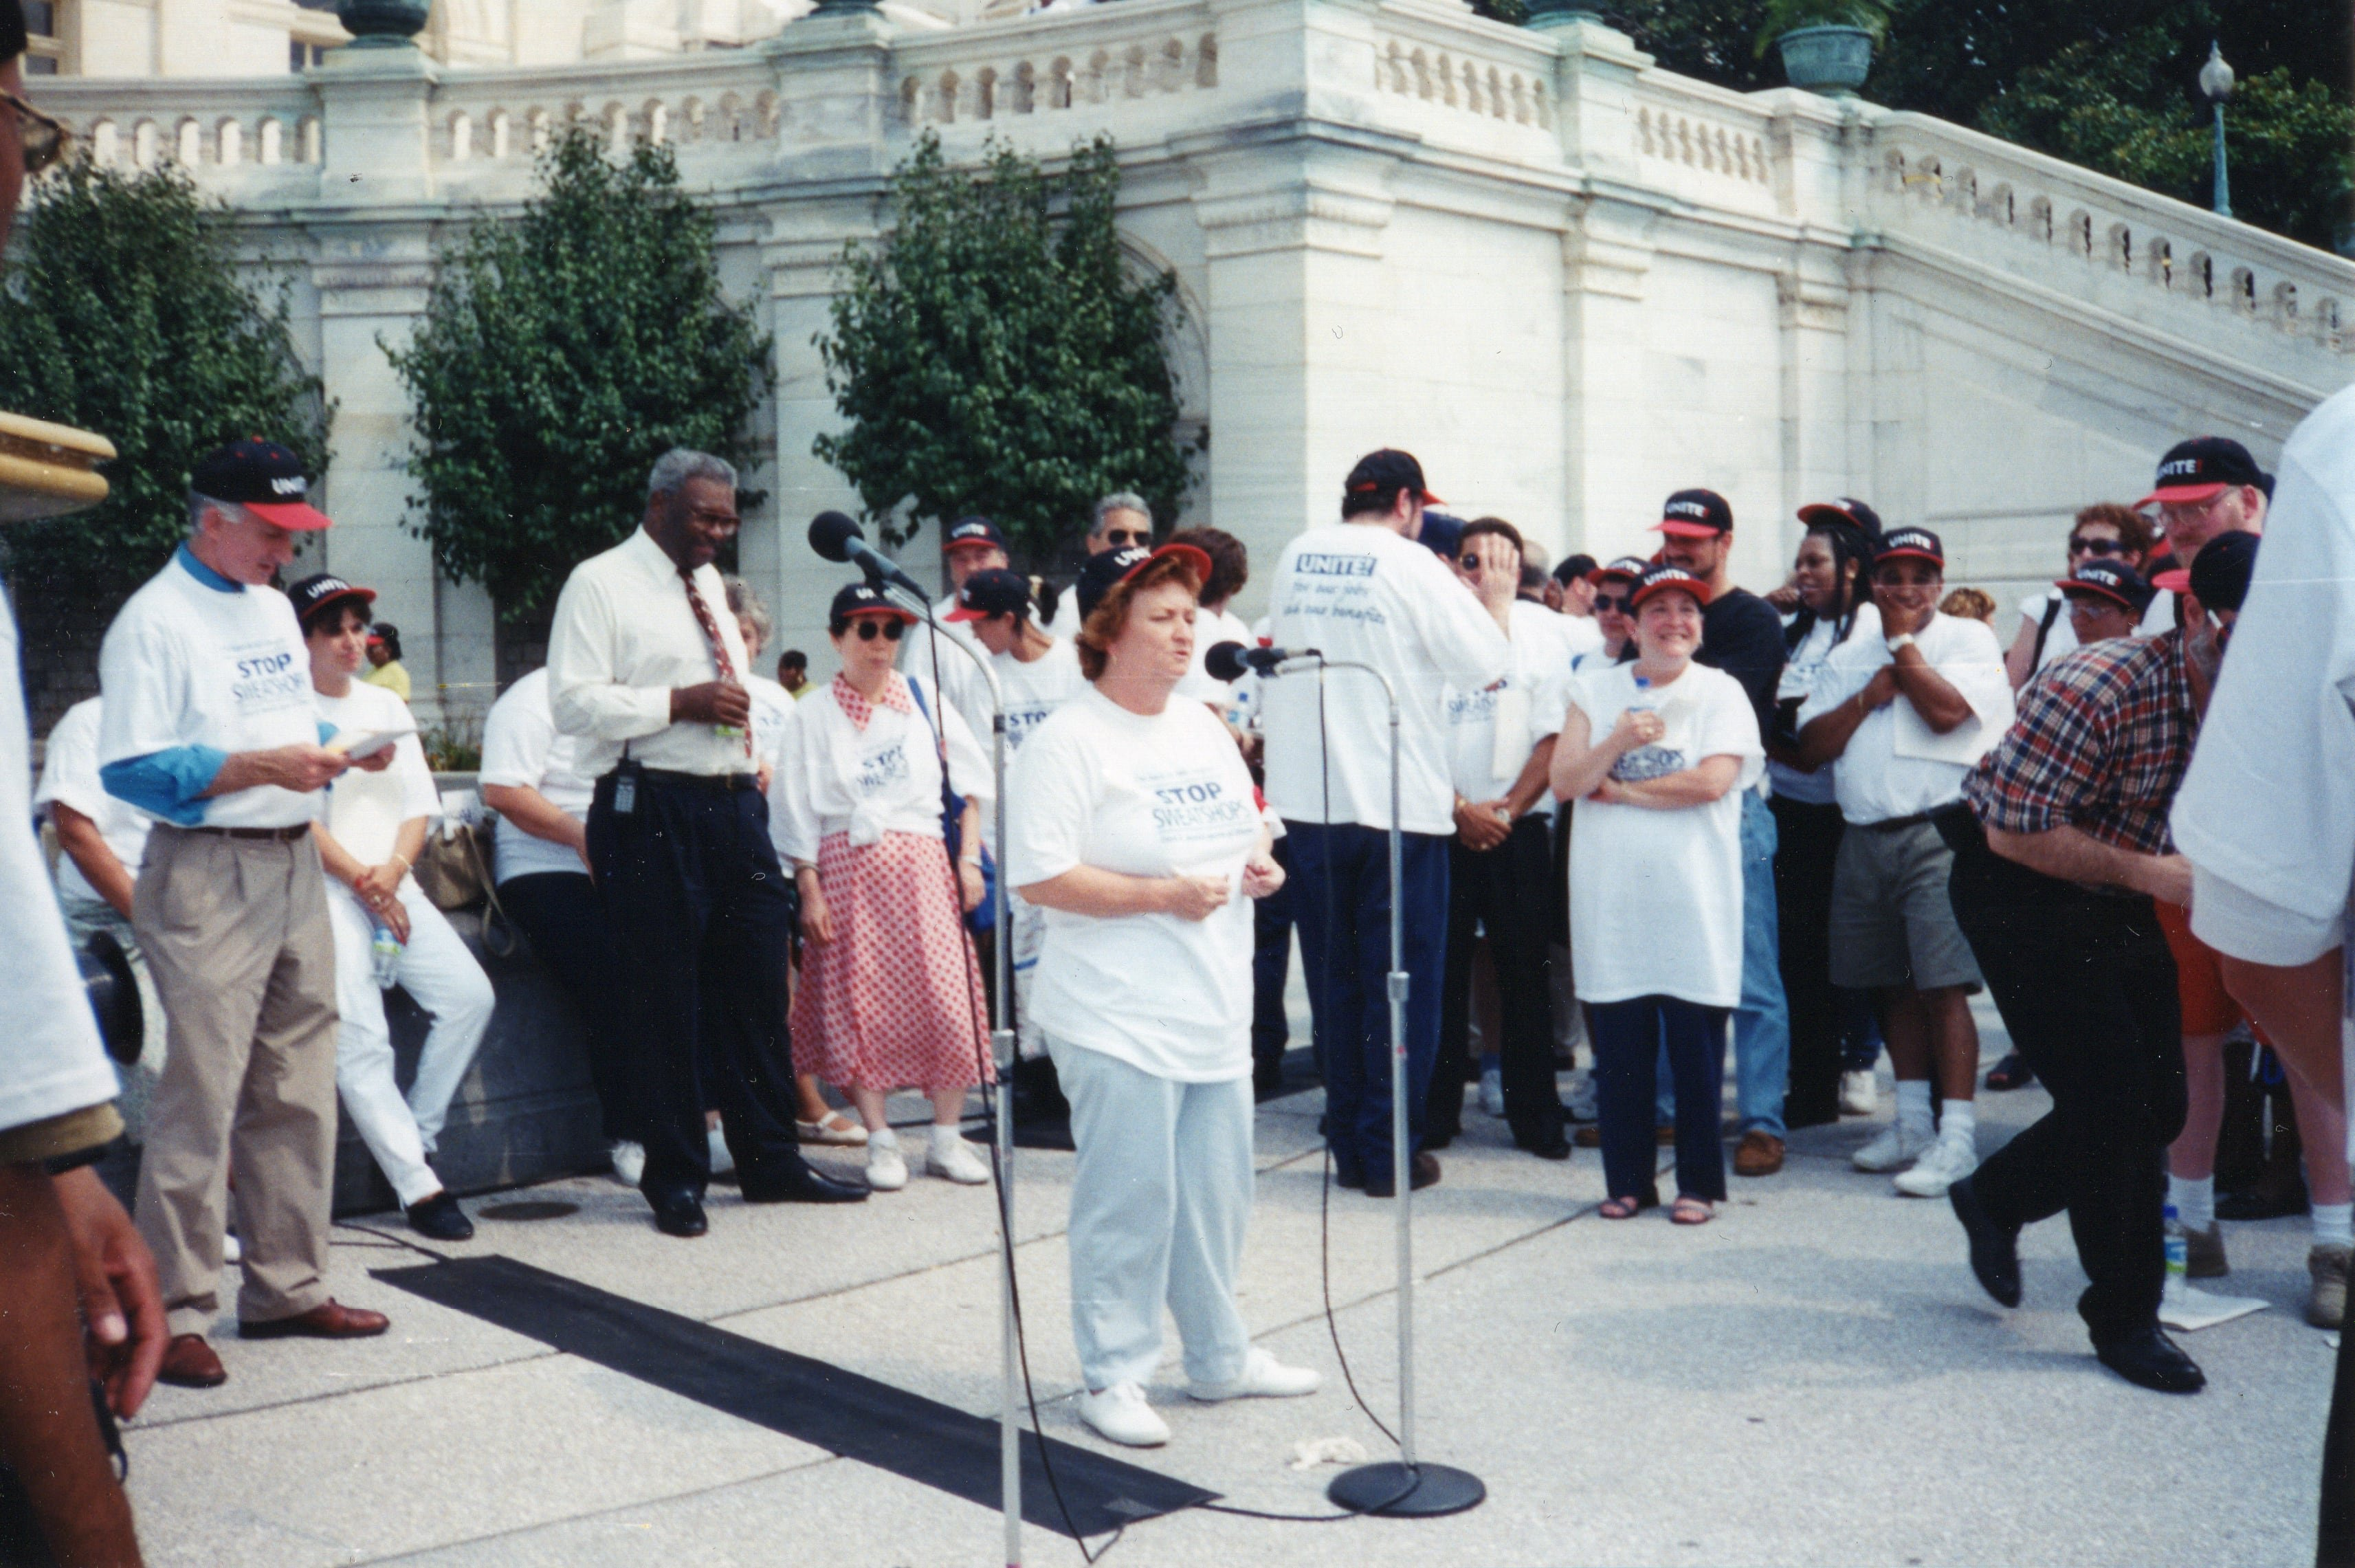 Frances Jackson, Local ACTWU Union President, Amalgamated Clothing and Textile Workers Union (ACTWU) Washington D.C. Protest, 1991